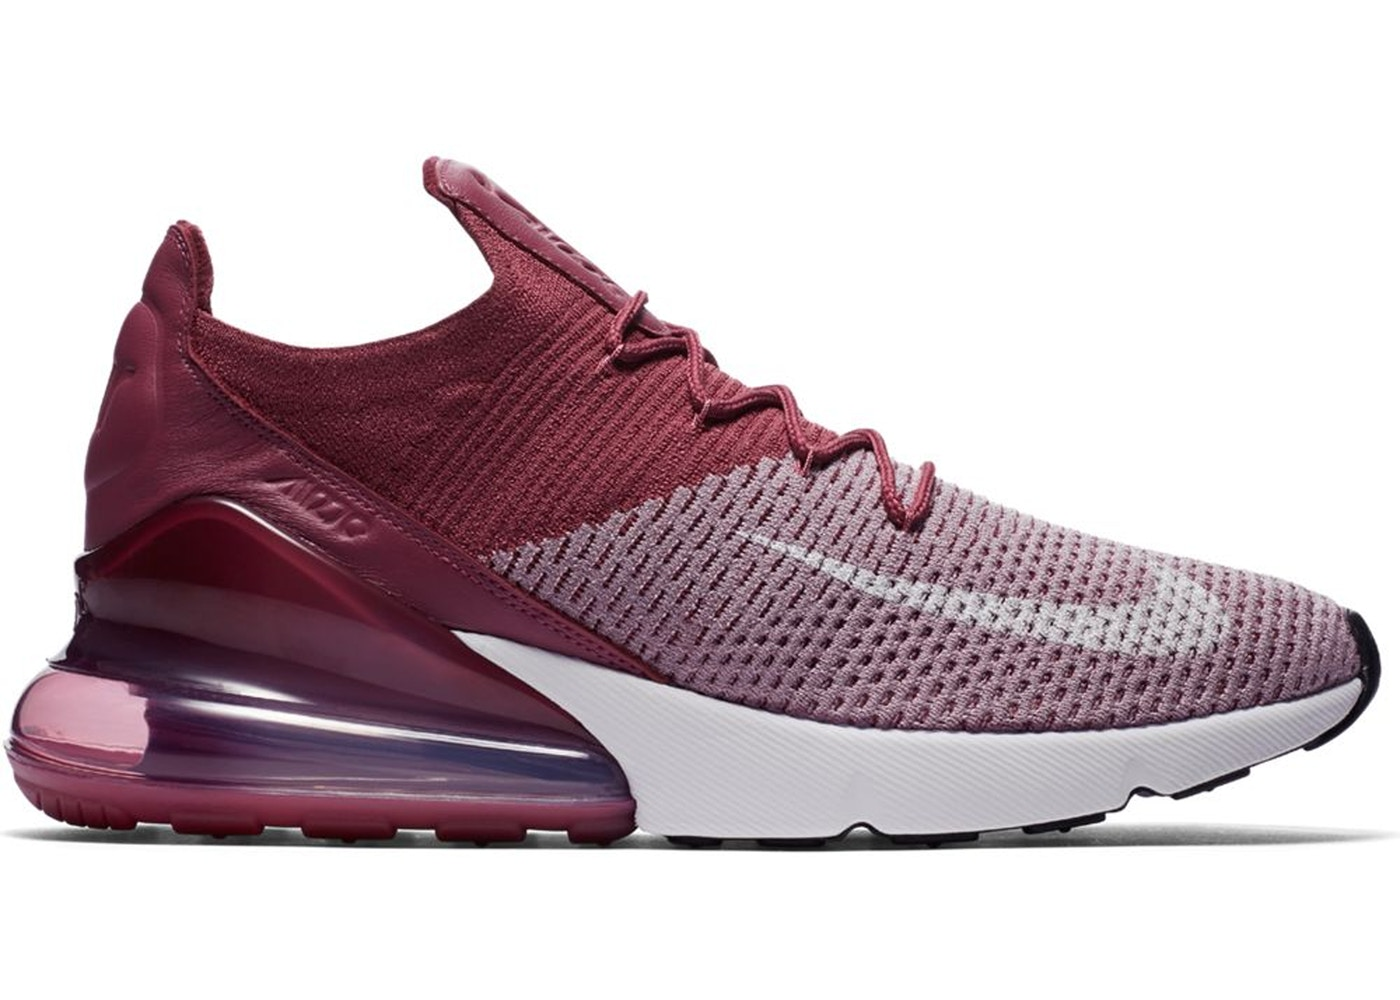 f52ae3558f Sell. or Ask. Size: 11. View All Bids. Air Max 270 Flyknit Plum Fog